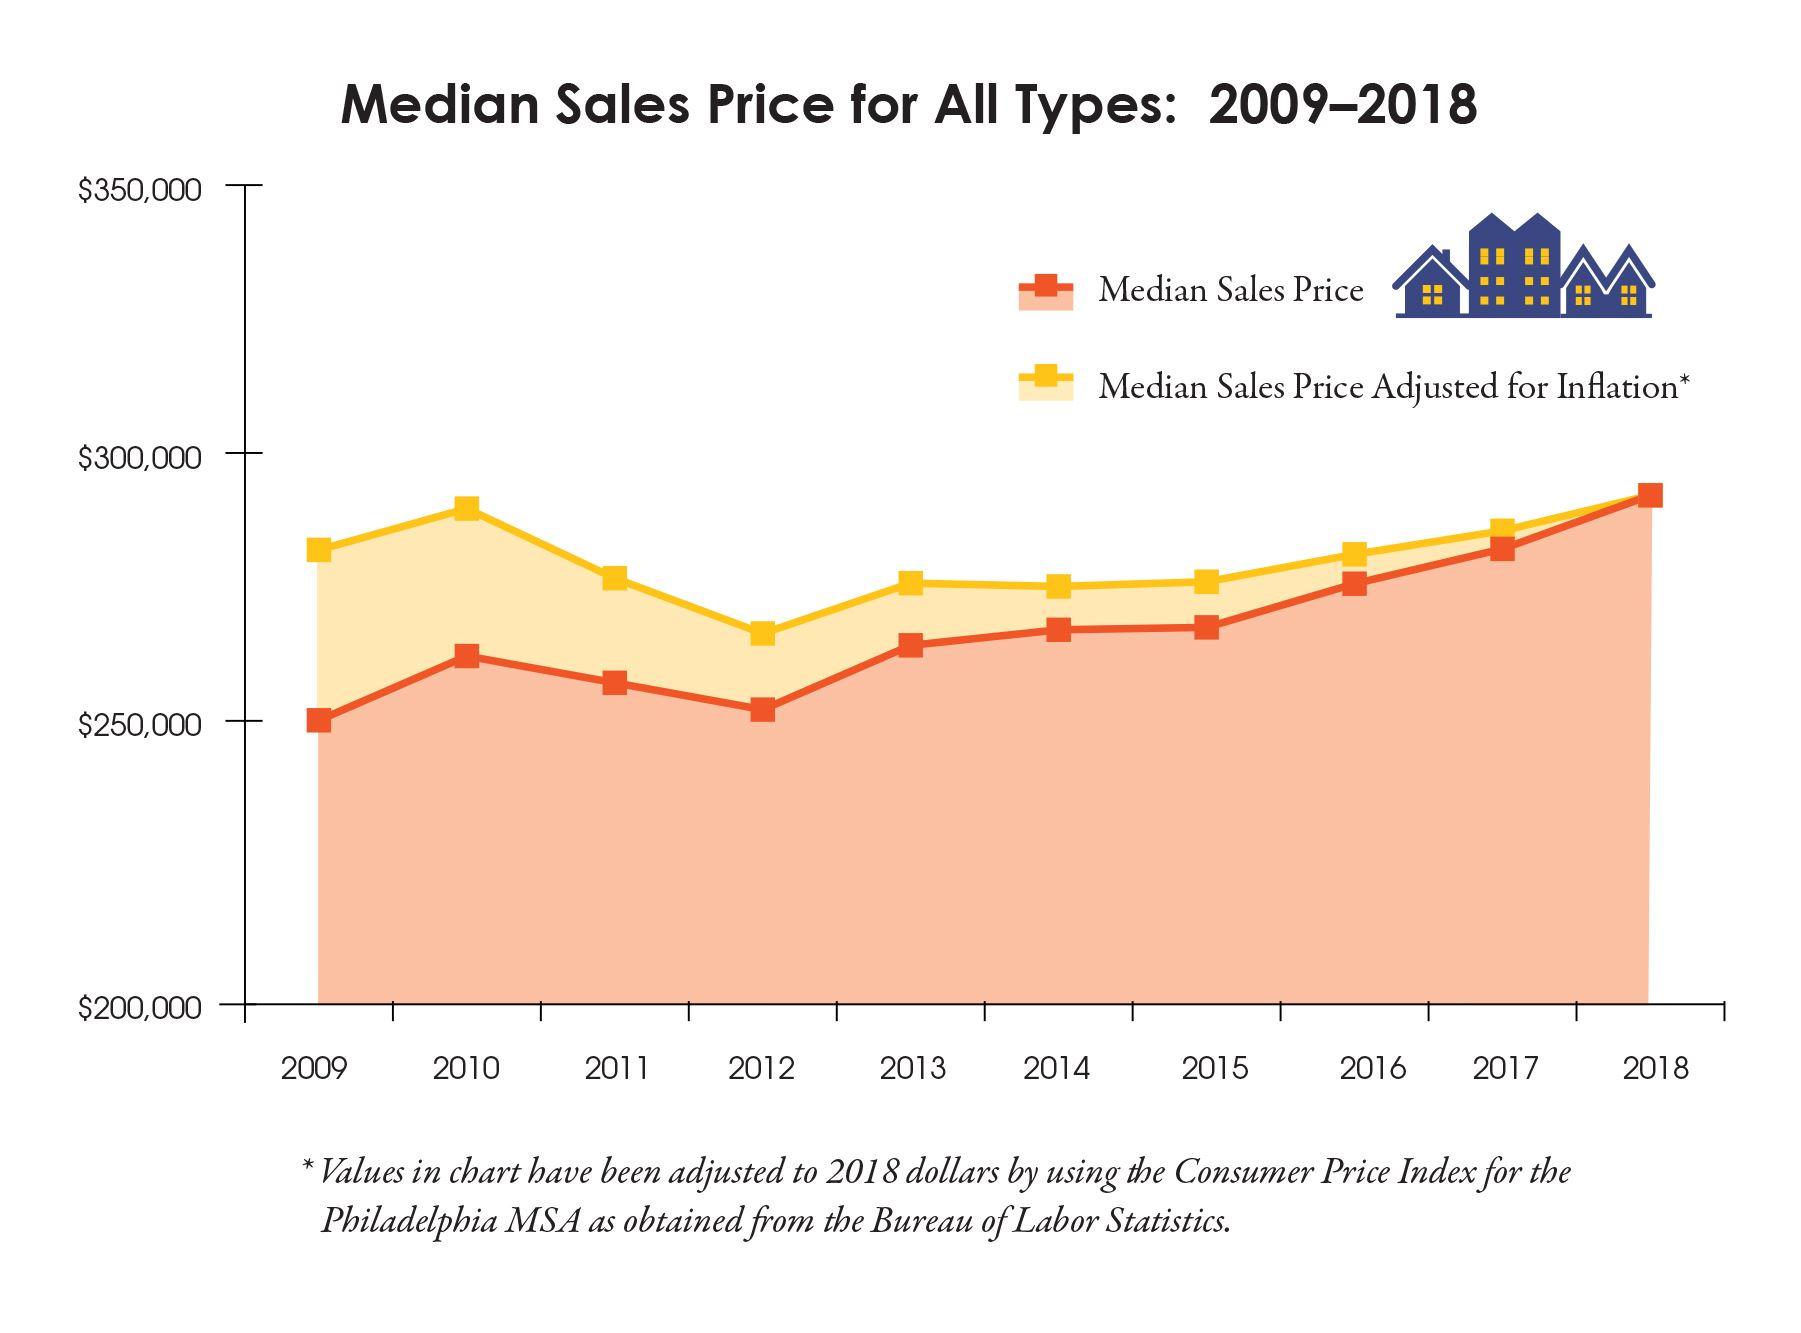 4.16.2019 Median Prices For Housing_TW 2 2018